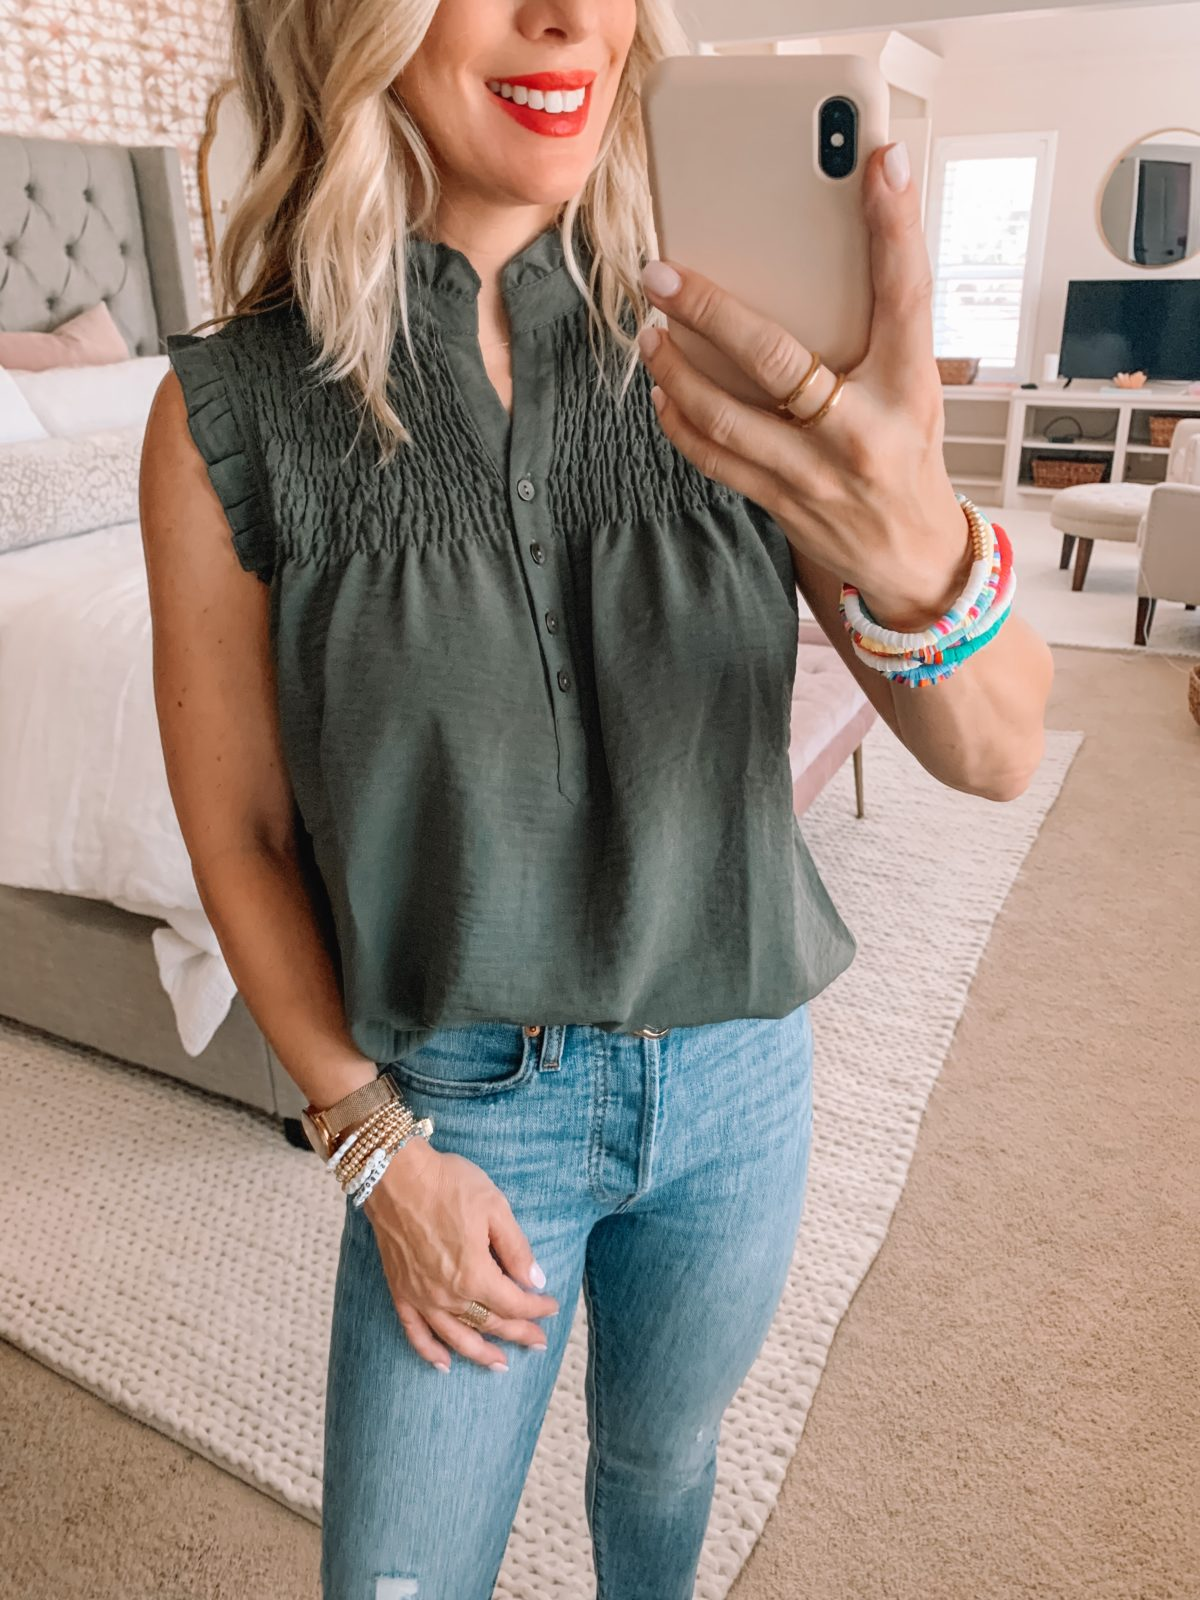 Amazon Fashion Finds, Smocked Sleeveless Top, Skinny Jeans